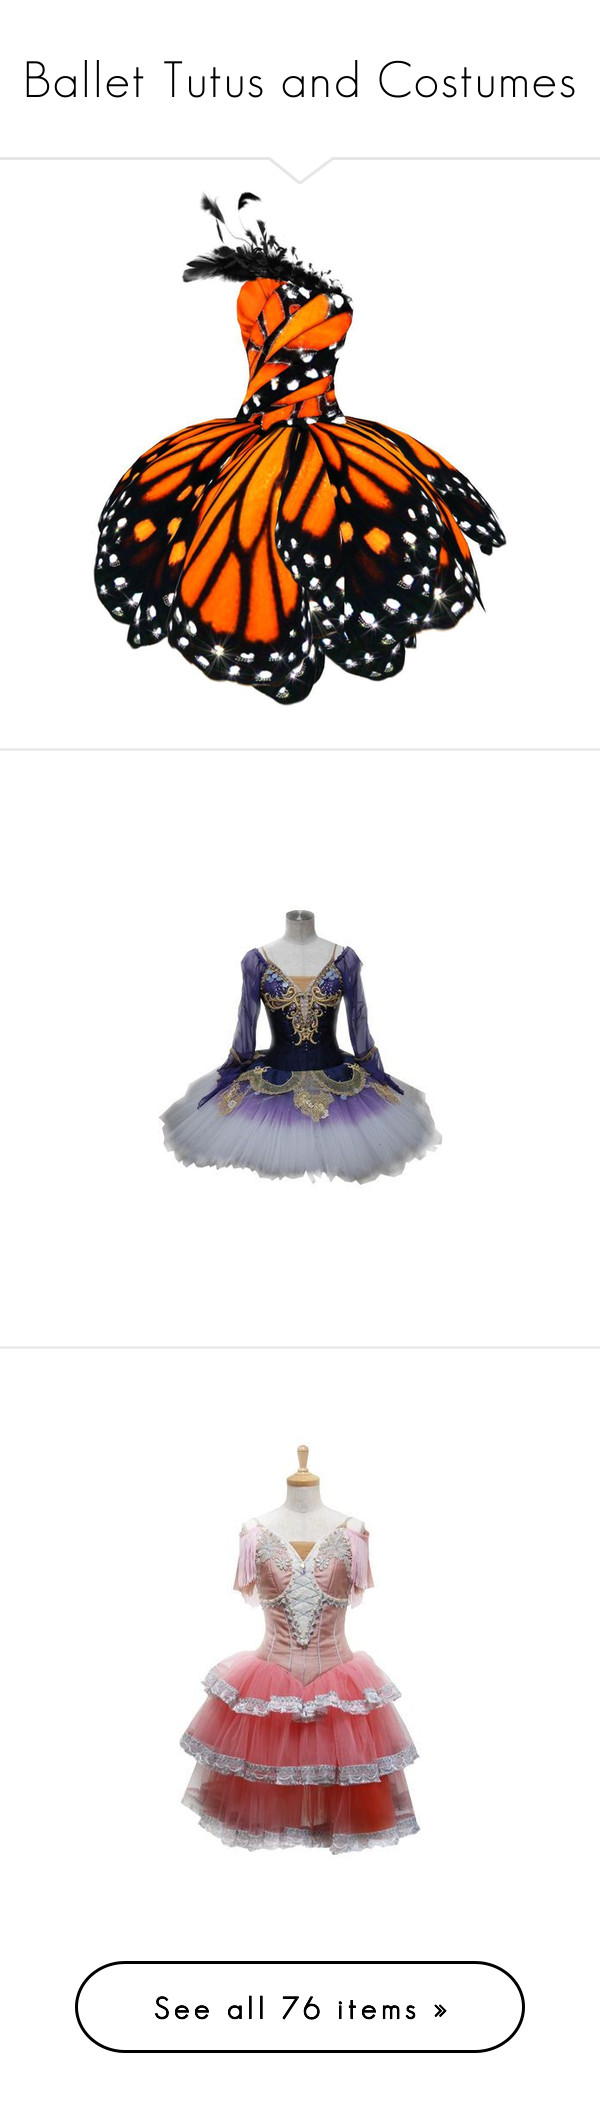 Ballet Tutus and Costumes\